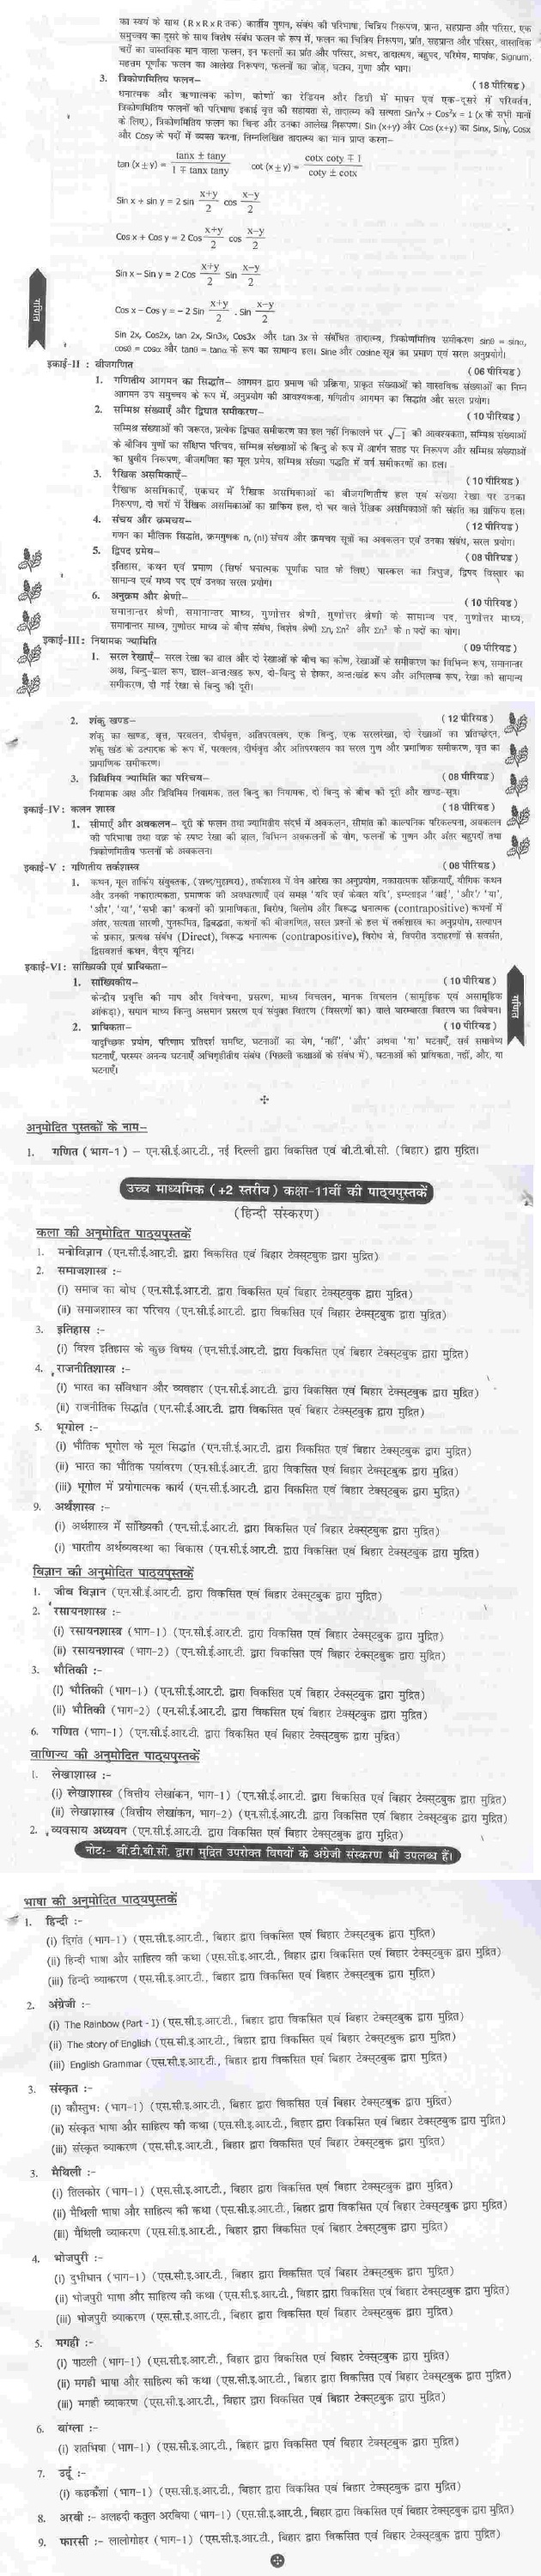 BSEB Syllabus For Class 11th 12th ARTS - History, Geography, Political Science, Home Science 2018-19 Bihar Board Syllabus PDF Download